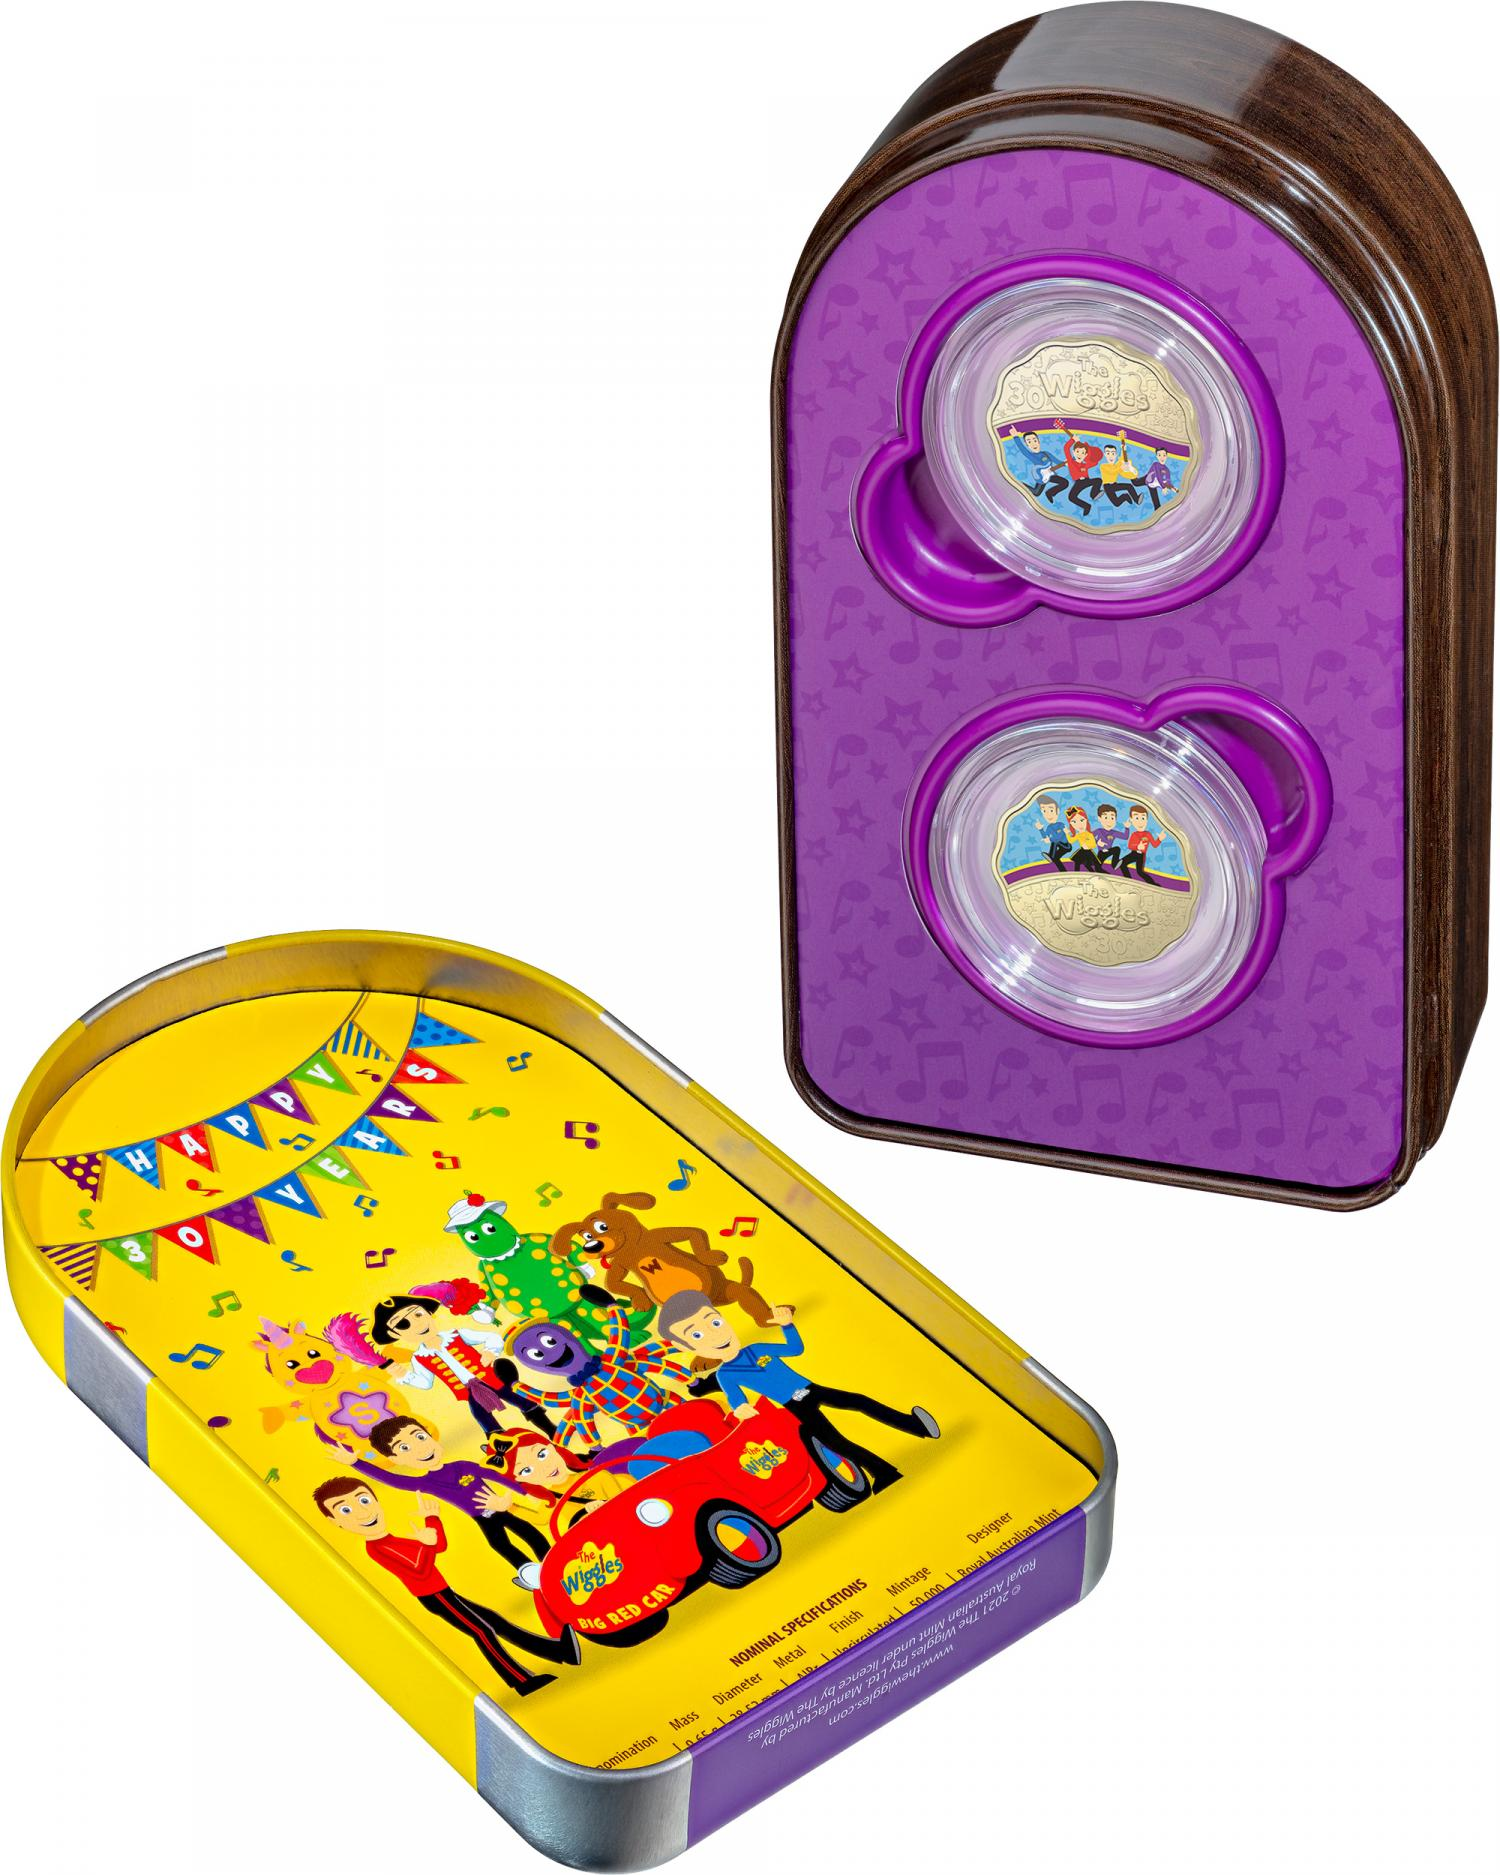 Thumbnail for 2021 30¢ 30 Years of Wiggles Two coin Set AlBr Scalloped Coloured Coin